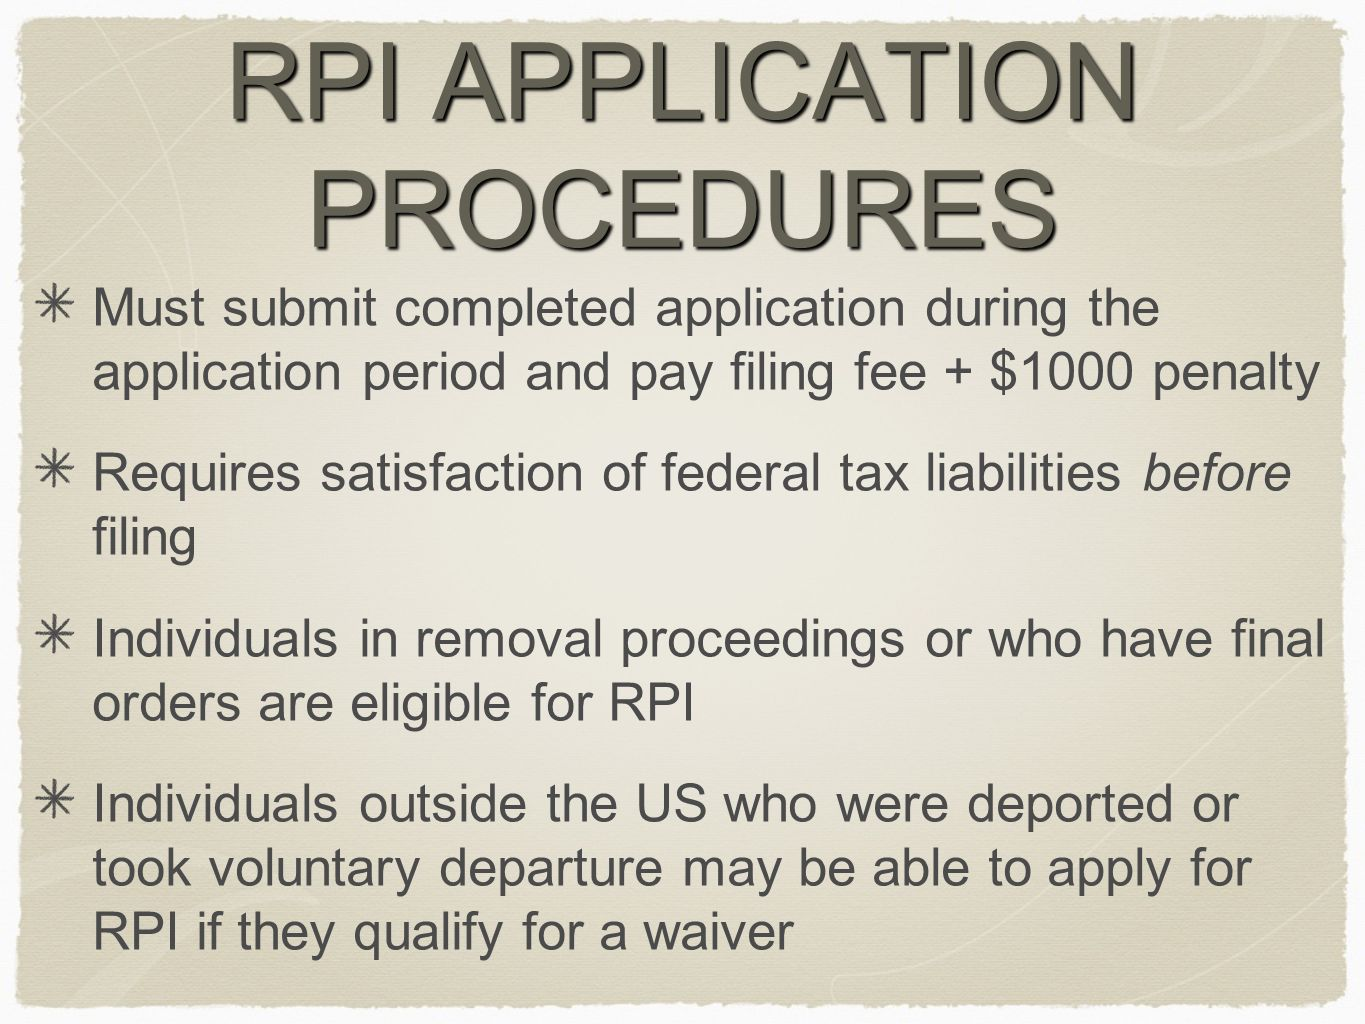 RPI APPLICATION PROCEDURES Must submit completed application during the application period and pay filing fee + $1000 penalty Requires satisfaction of federal tax liabilities before filing Individuals in removal proceedings or who have final orders are eligible for RPI Individuals outside the US who were deported or took voluntary departure may be able to apply for RPI if they qualify for a waiver